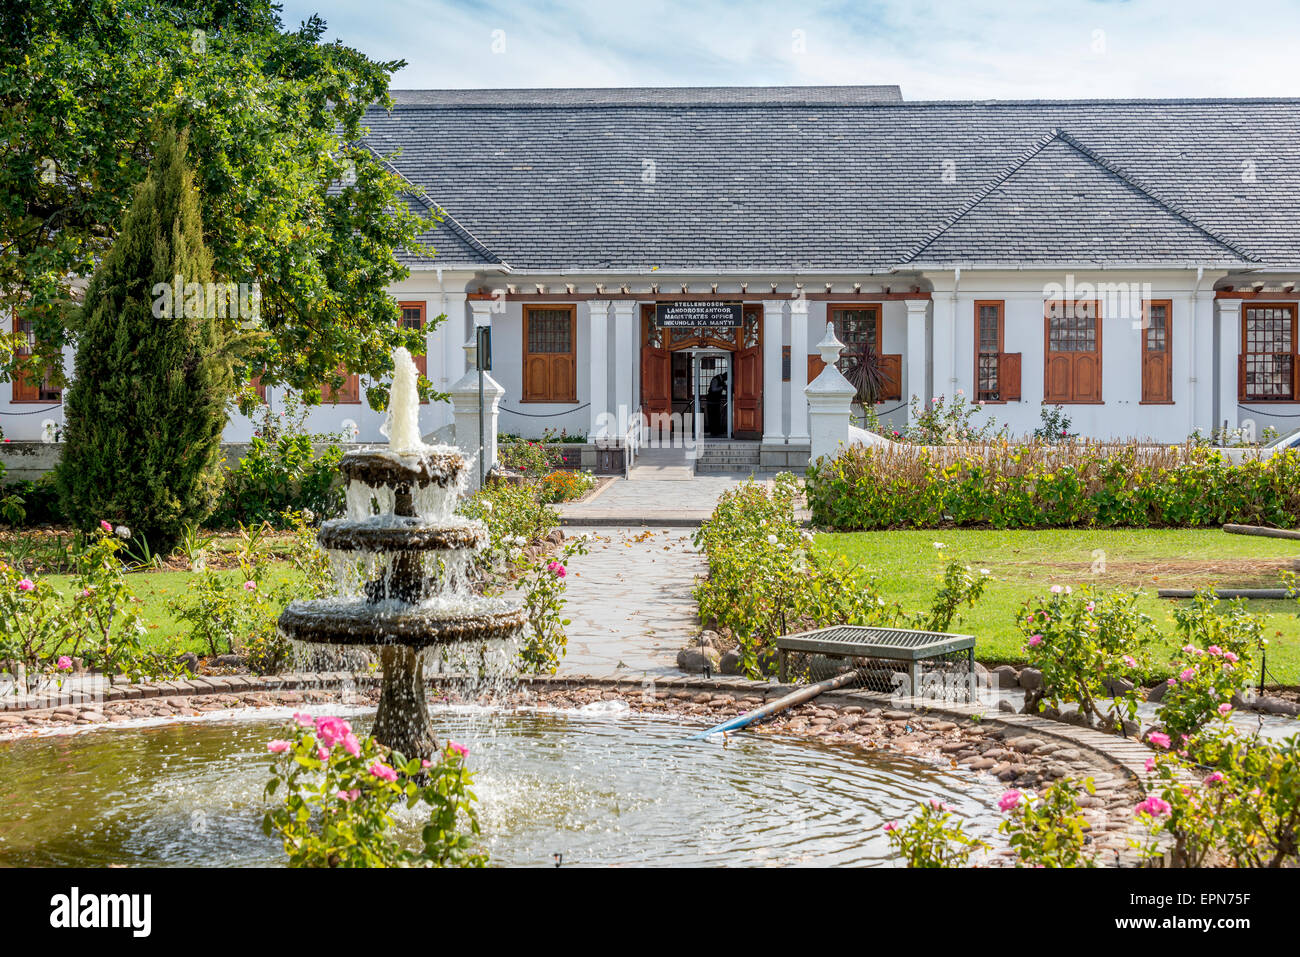 The Burgerhuis, Stellenbosch, Cape Winelands District, Western Cape Province, Republic of South Africa - Stock Image